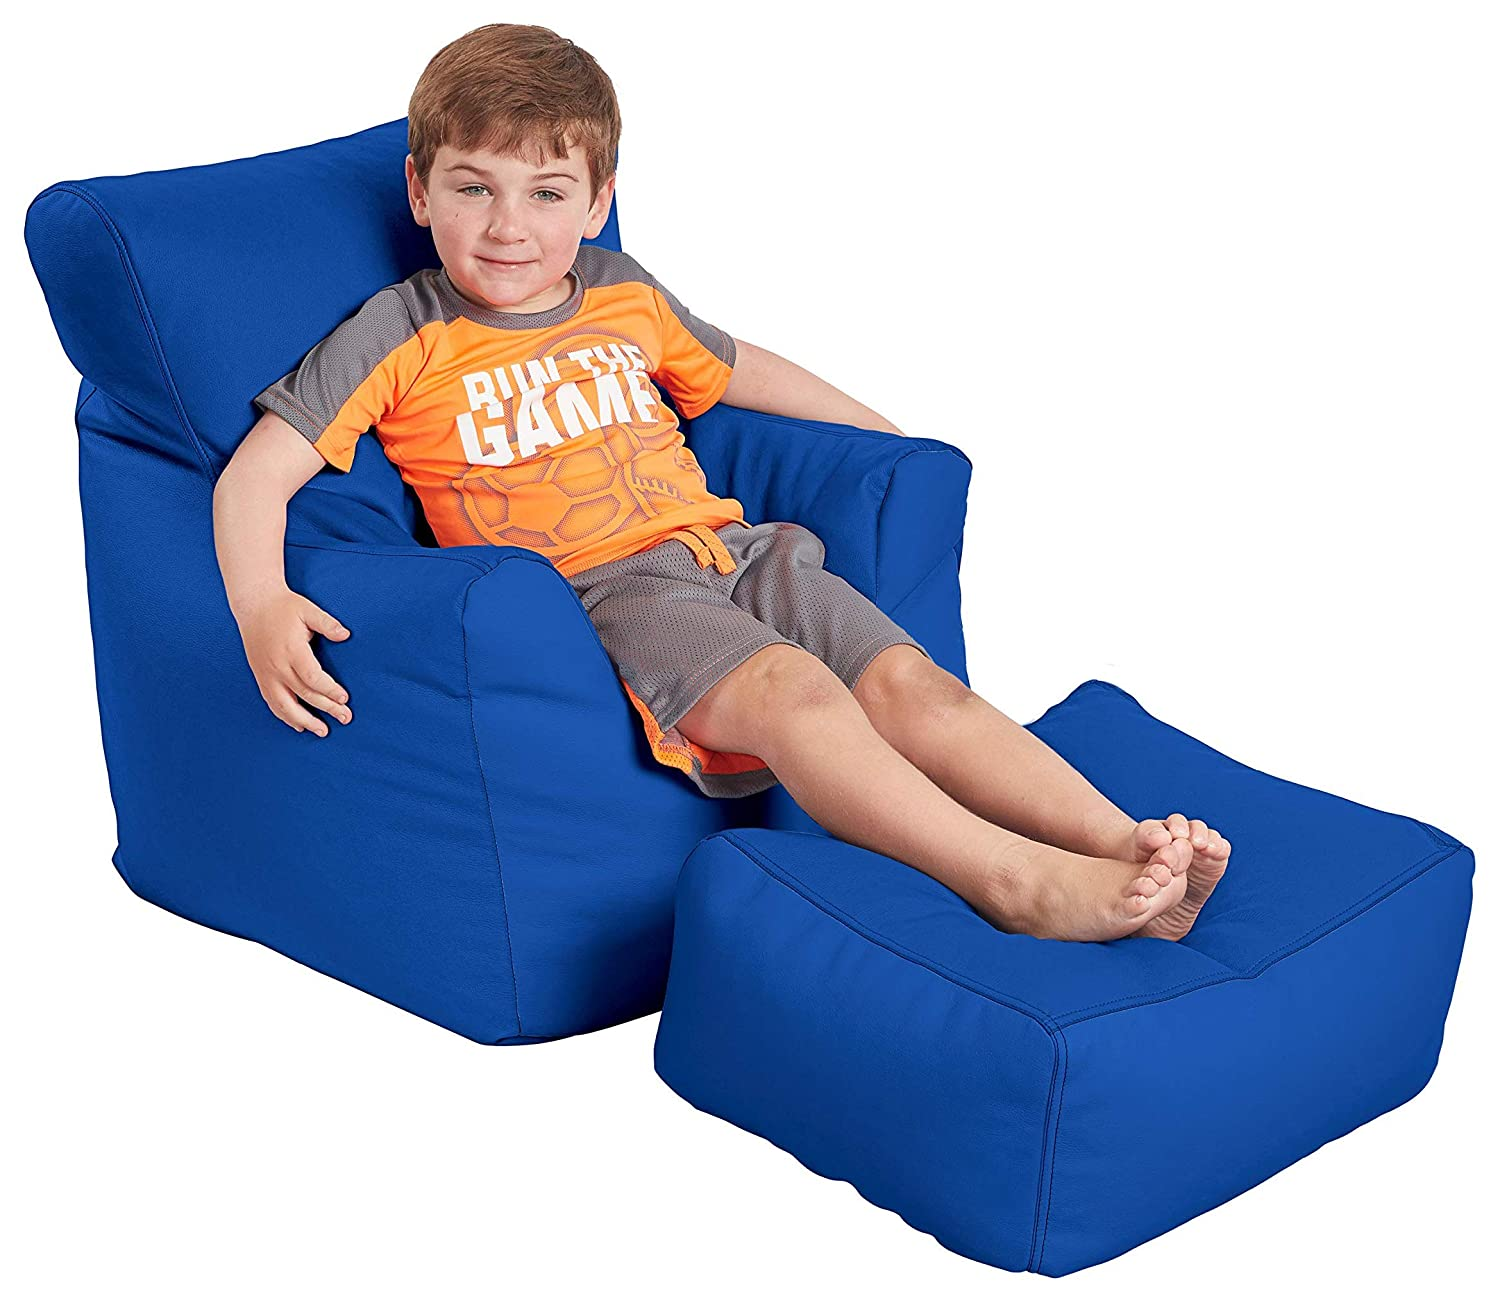 FDP SoftScape Bean Bag Chair and Ottoman Set, Furniture for Kids, Perfect for Reading, Playing Video Games or Relaxing, Alternative Seating for Classrooms, Daycares, Libraries or Home - Blue